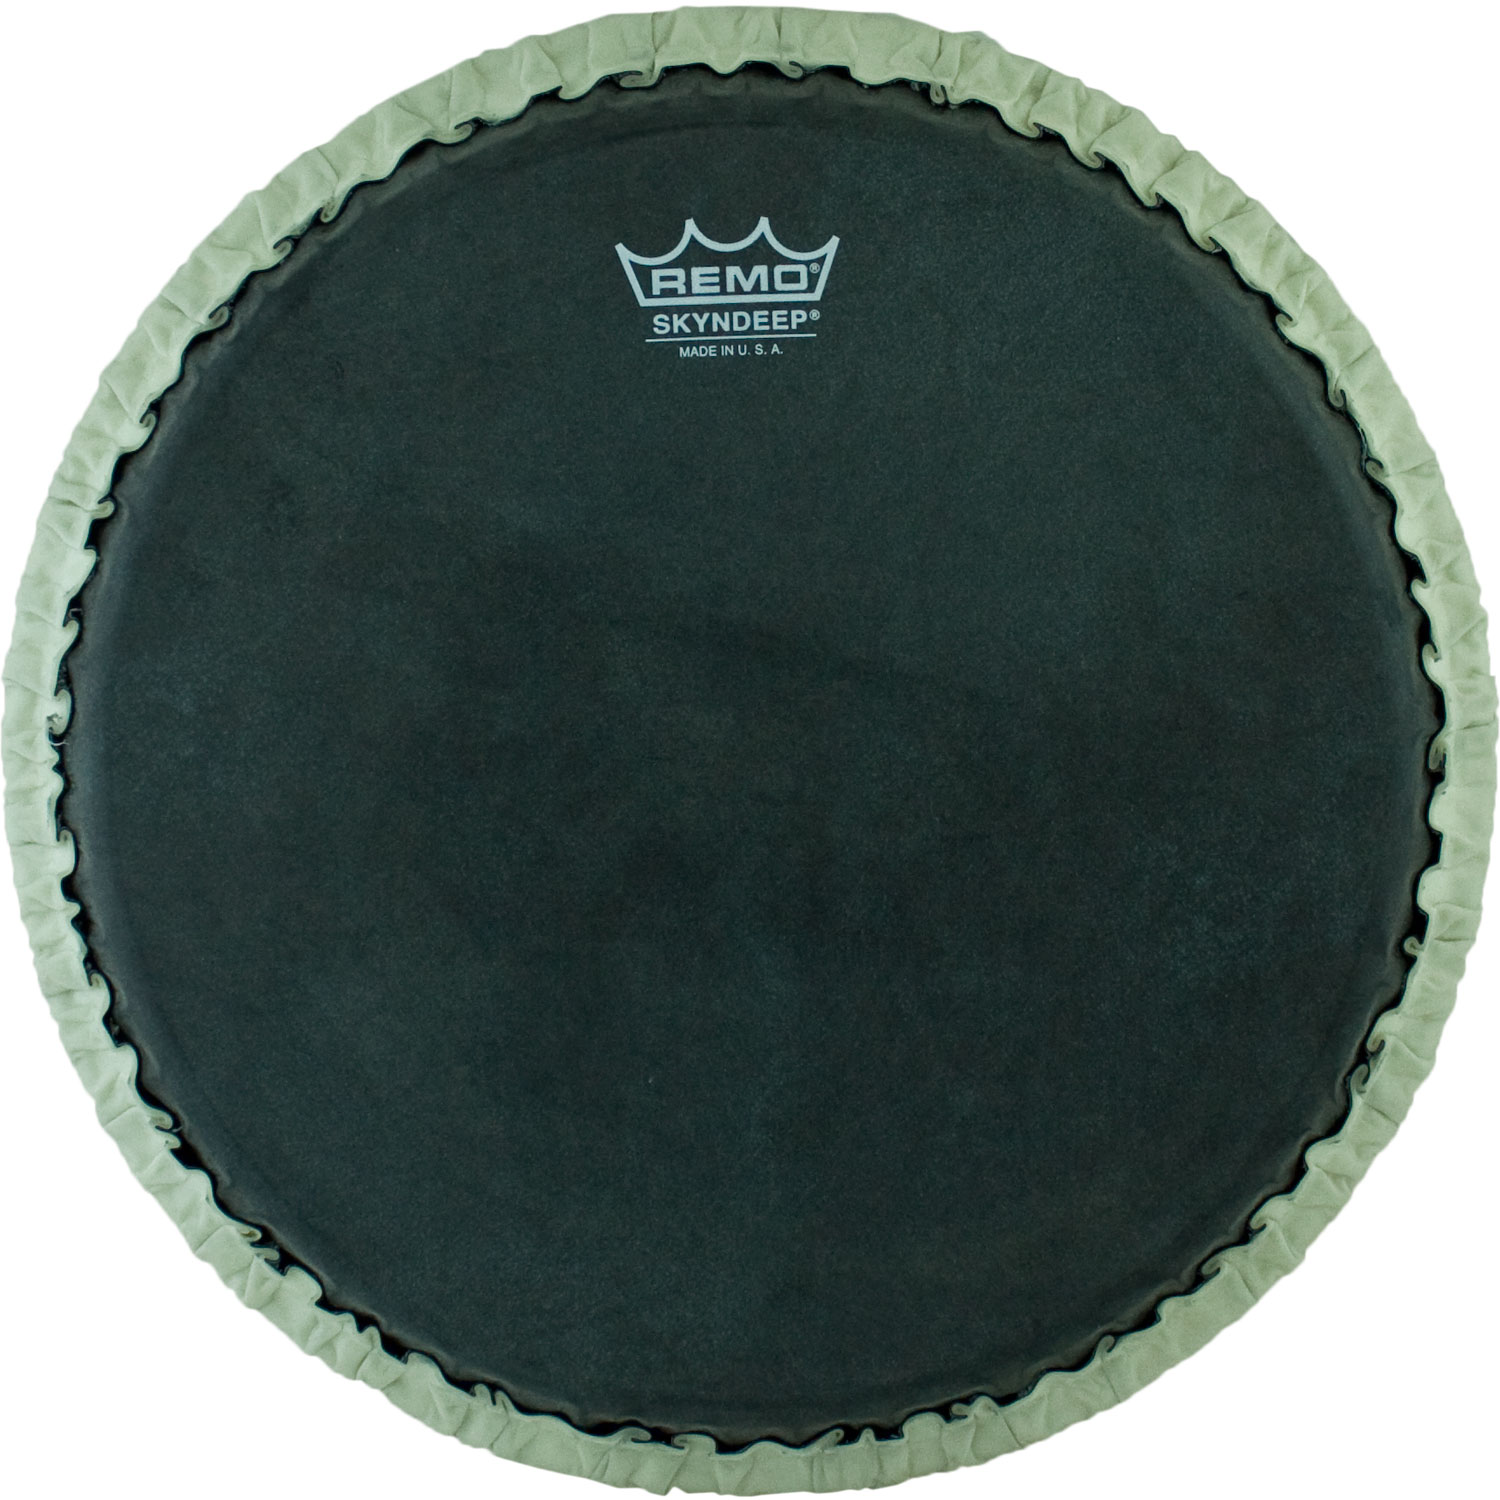 """Remo 11.75"""" Tucked Skyndeep Conga Drum Head with Black Calfskin Graphic"""